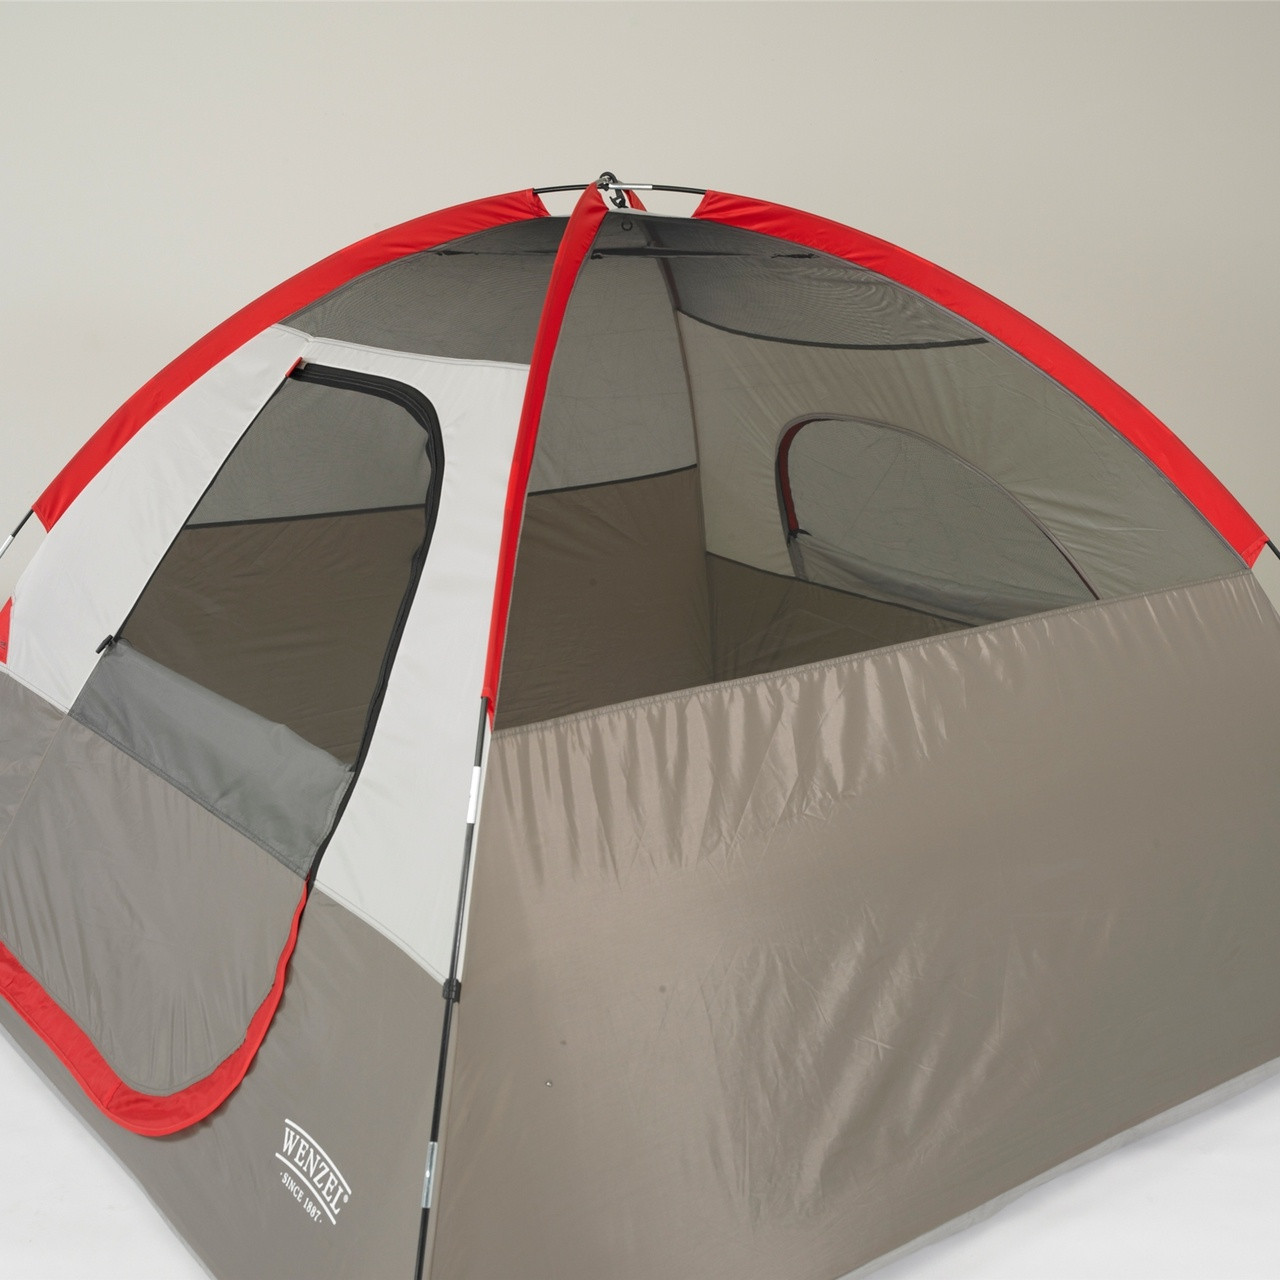 Side view of the Wenzel Ridgeline 3 tent setup without the rain fly on showing the interior of the tent